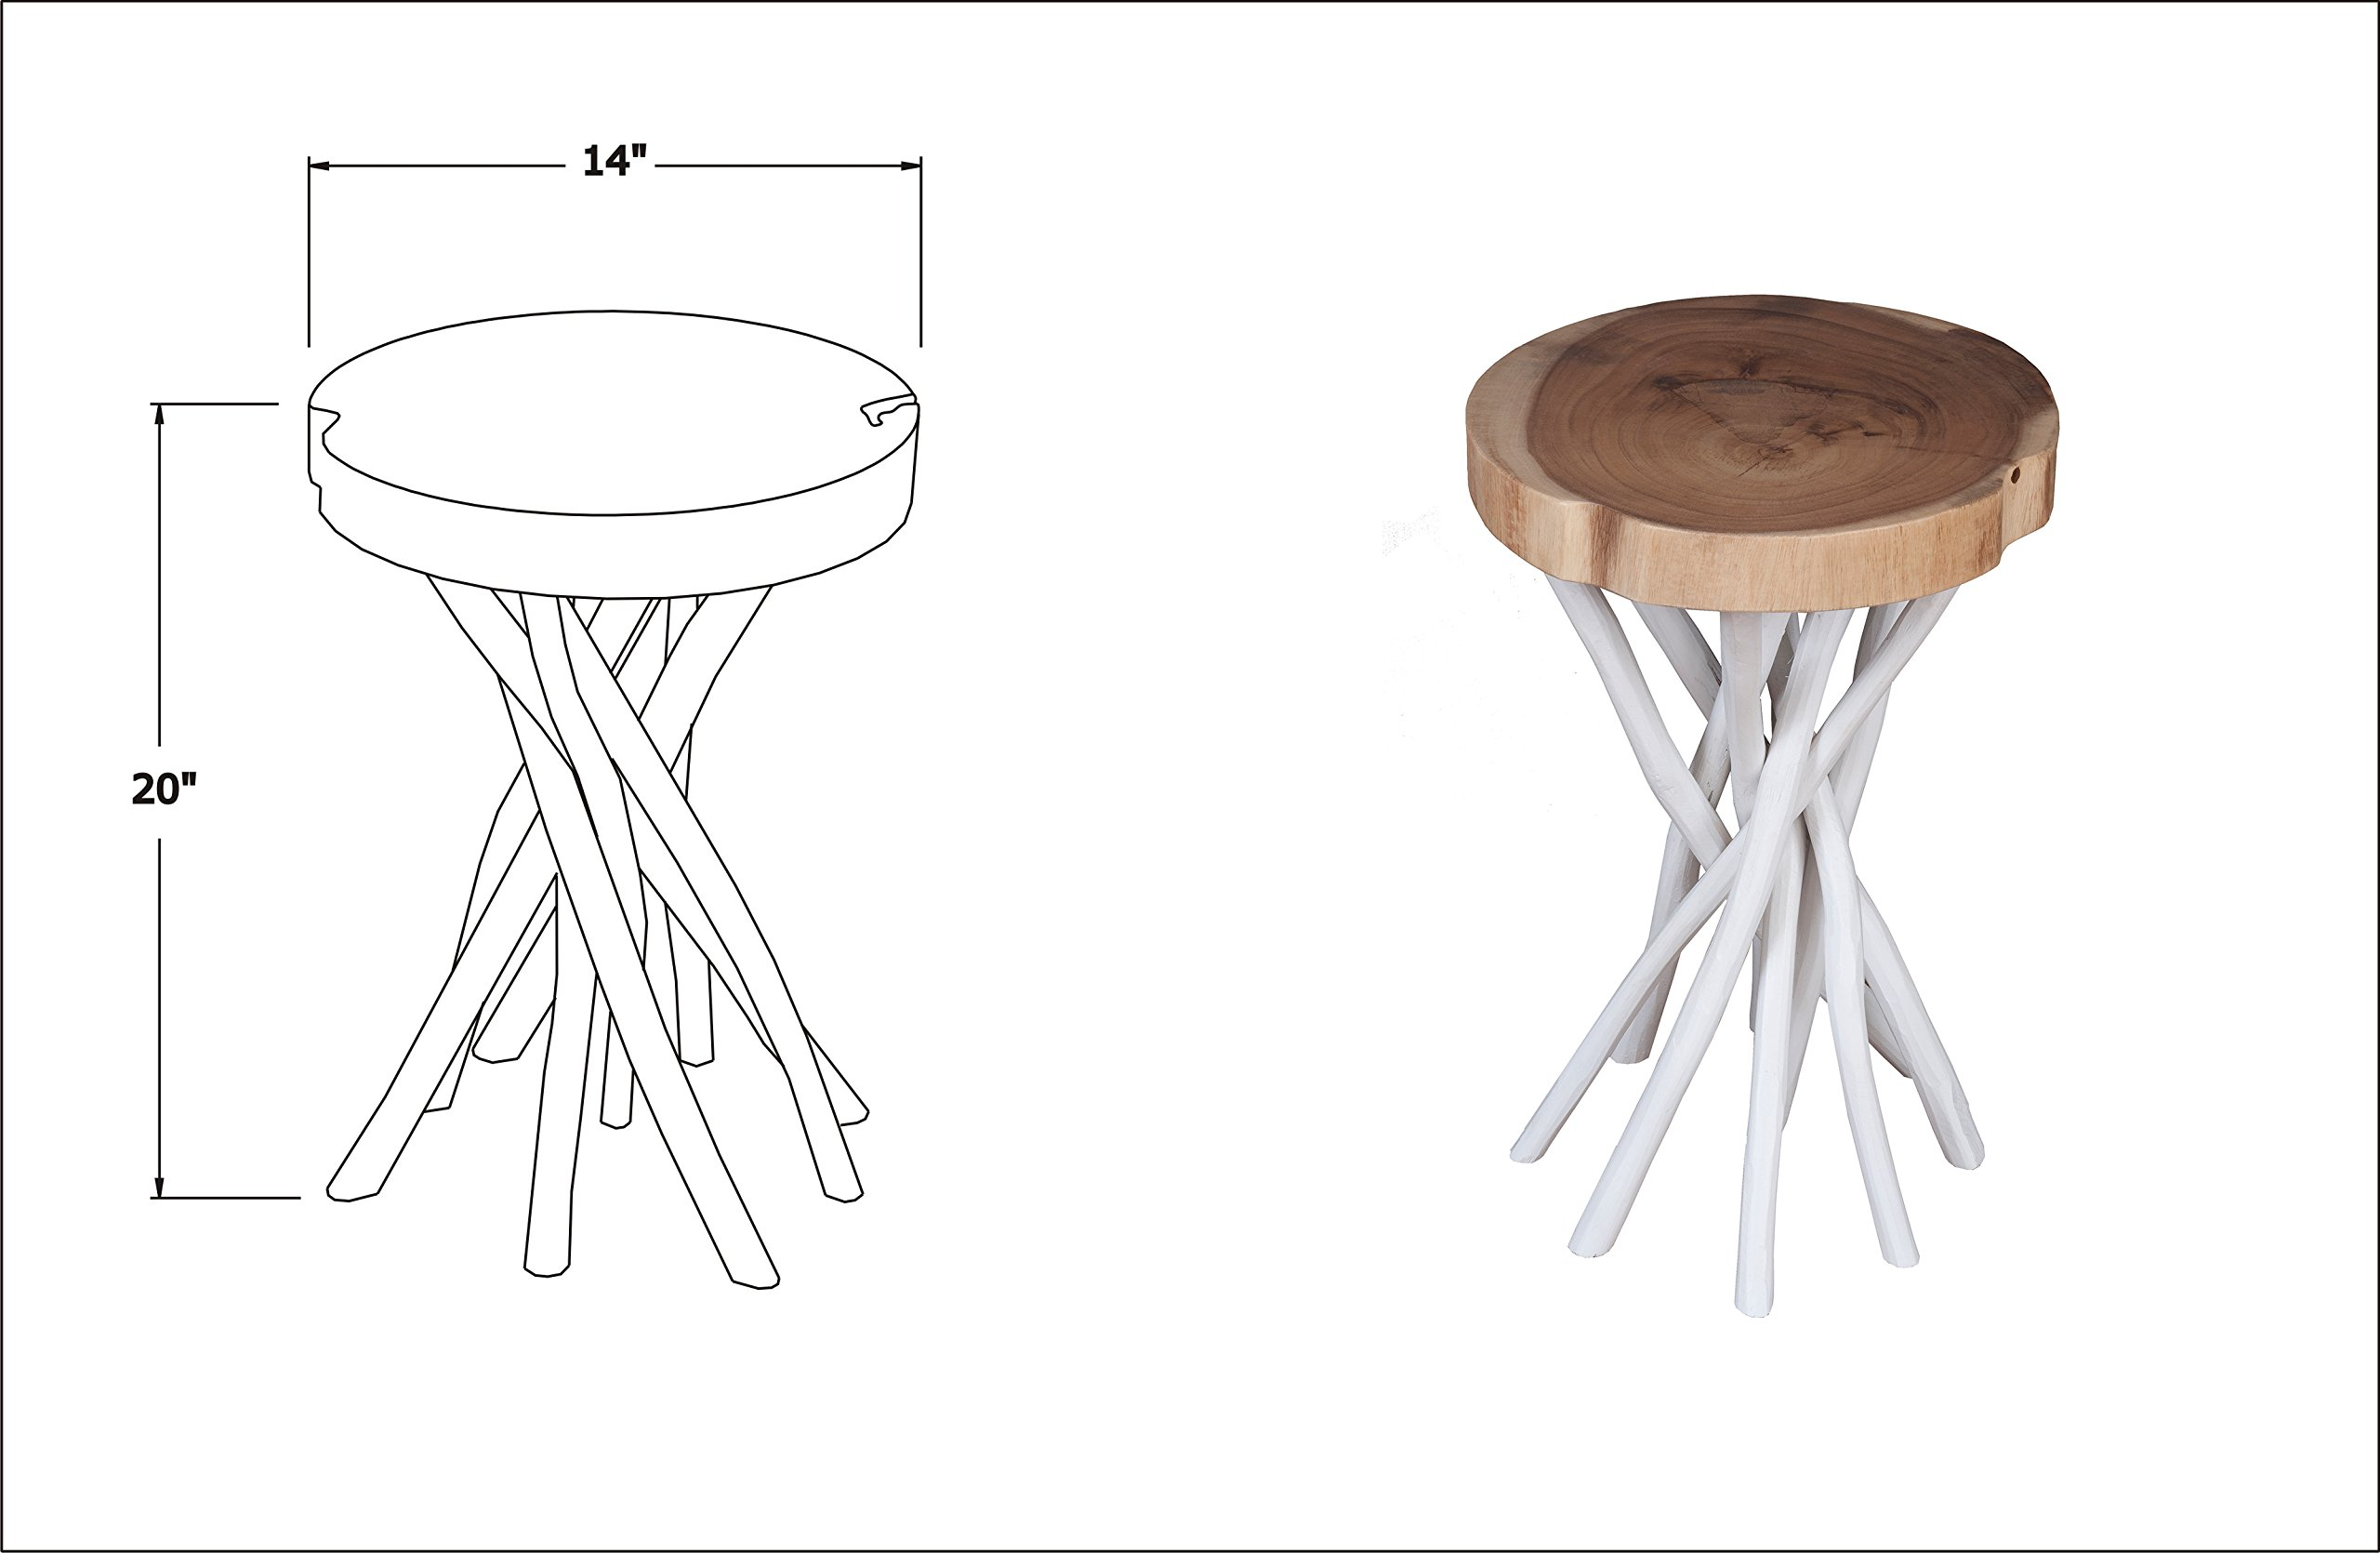 East at Main Kenton Teakwood White Round Accent Table, (14x14x20) by East At Main (Image #3)